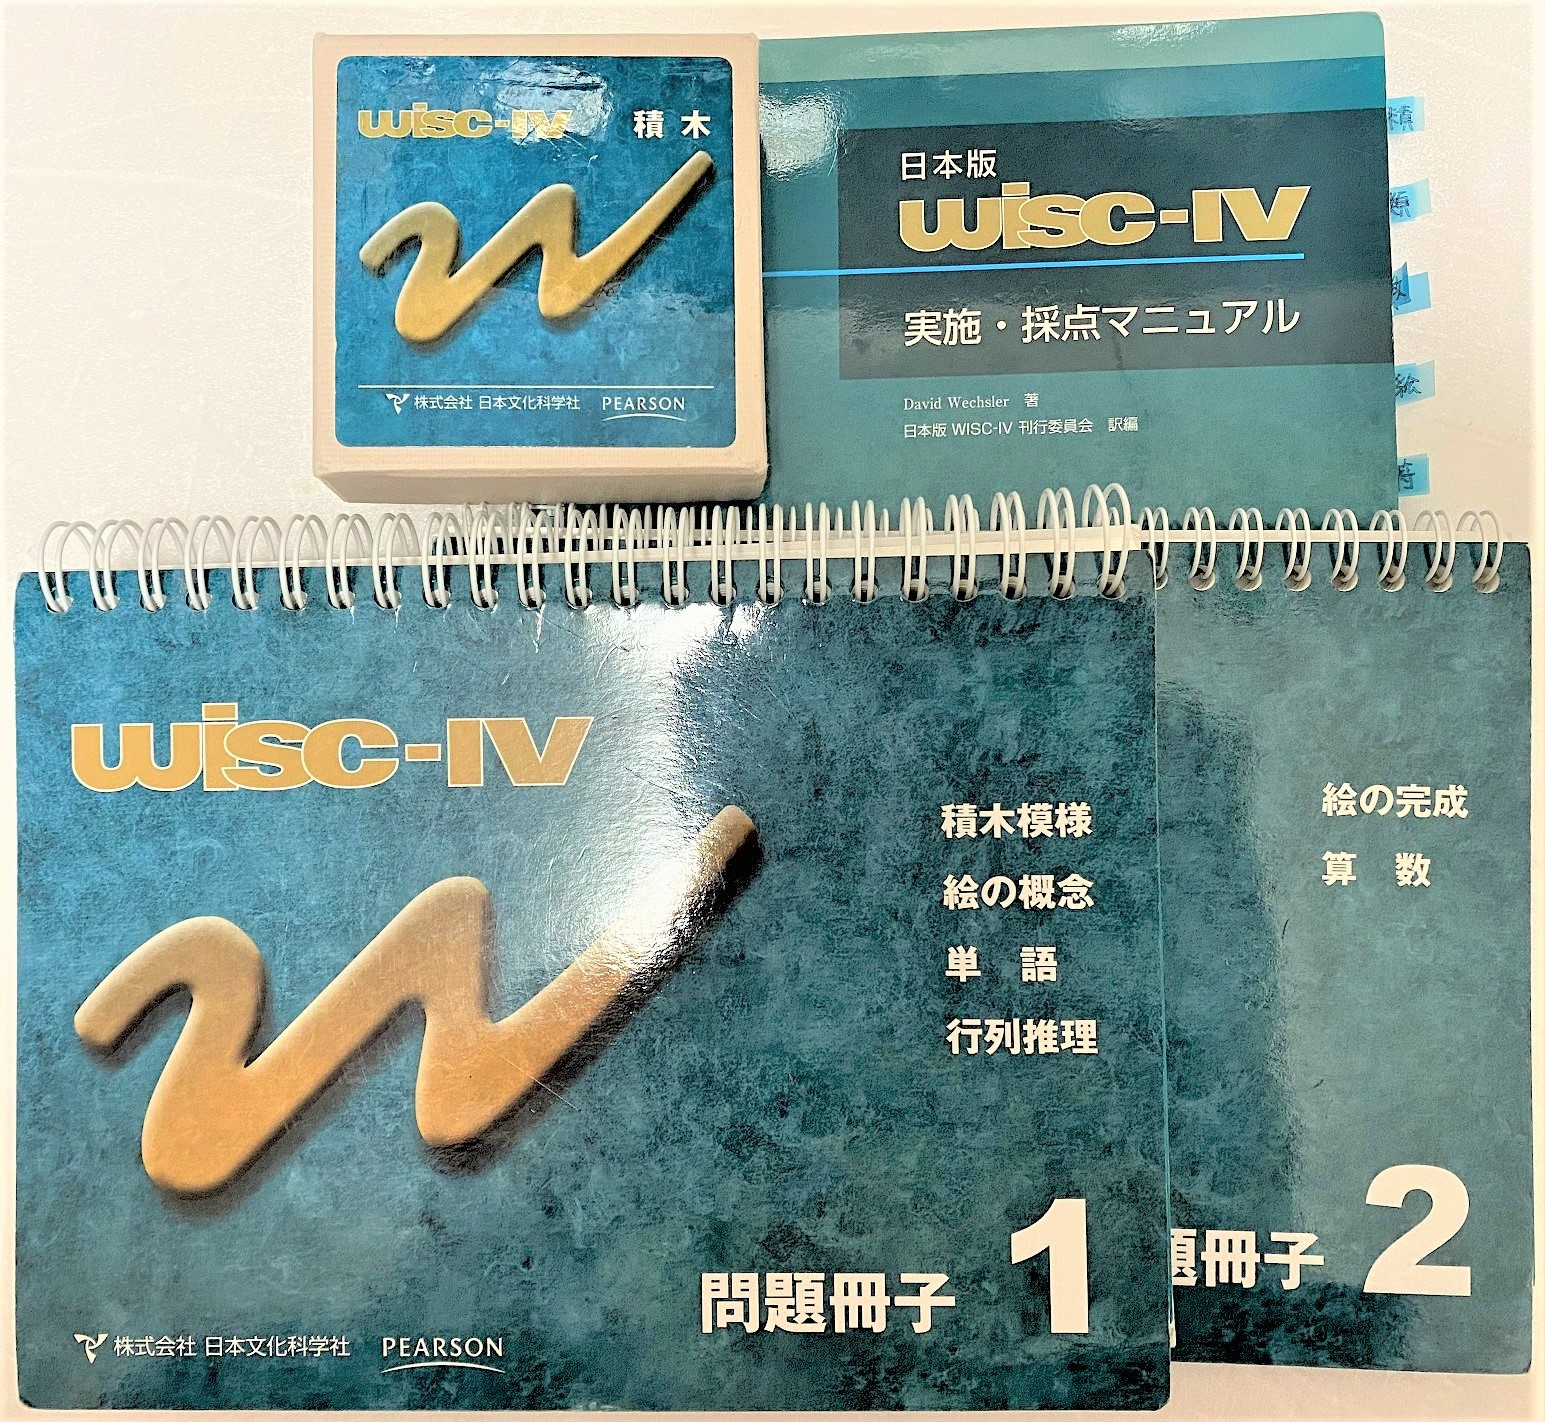 012【WISC-Ⅳ】WISC4(ウィスク4)とWISK4の違い